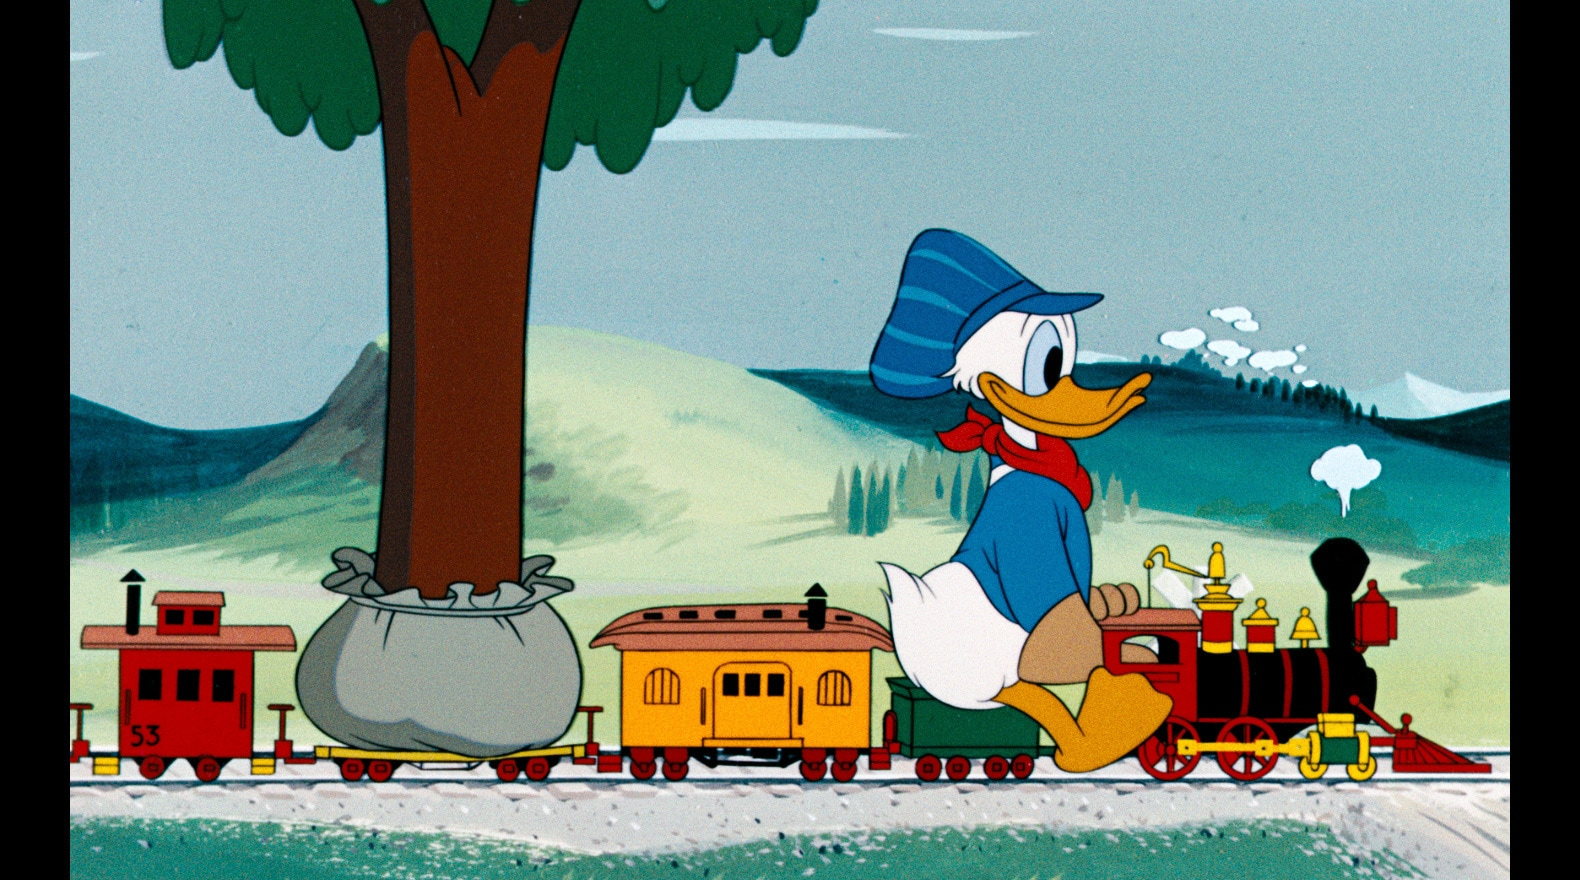 Donald enjoys a little time with his model train set.